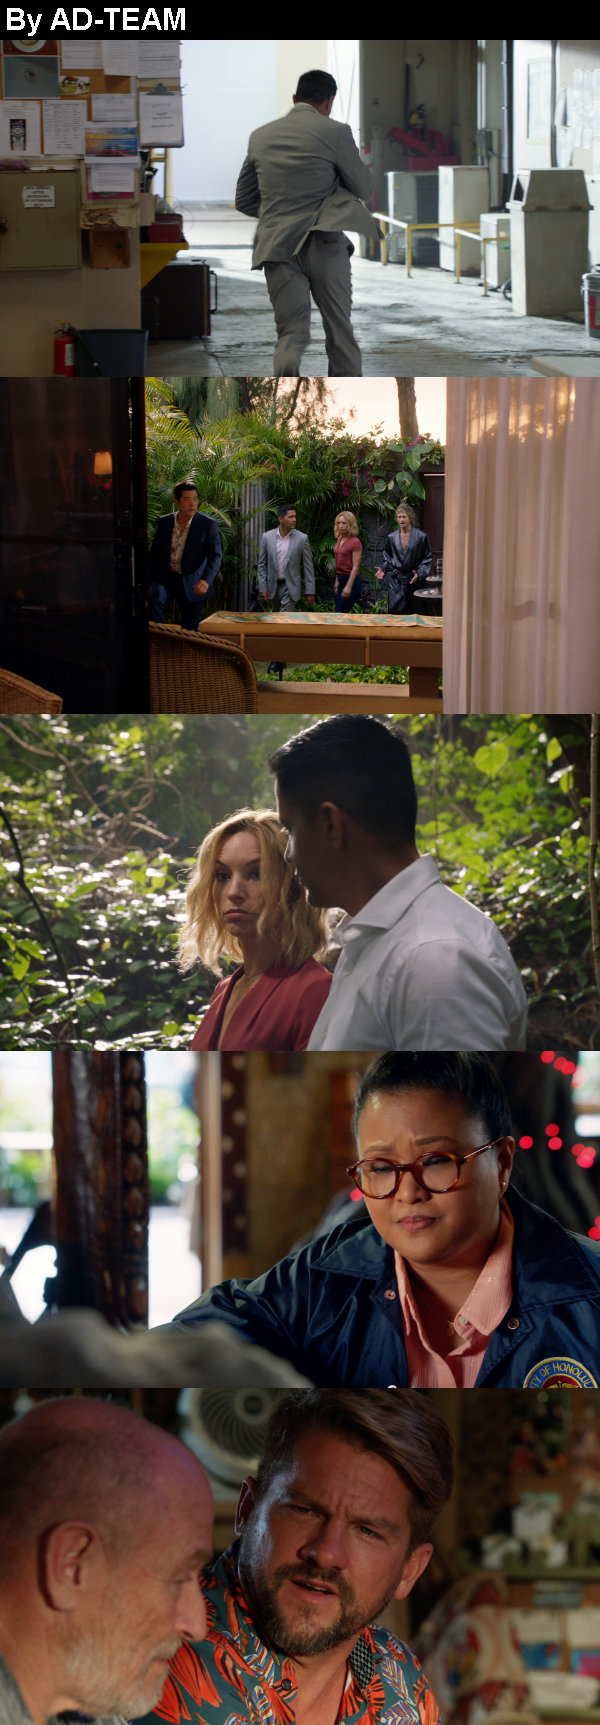 Magnum P I S02E07 The Man in the Secret Room 1080p AMZN WEB-DL DDP5 1 H 264-NTb